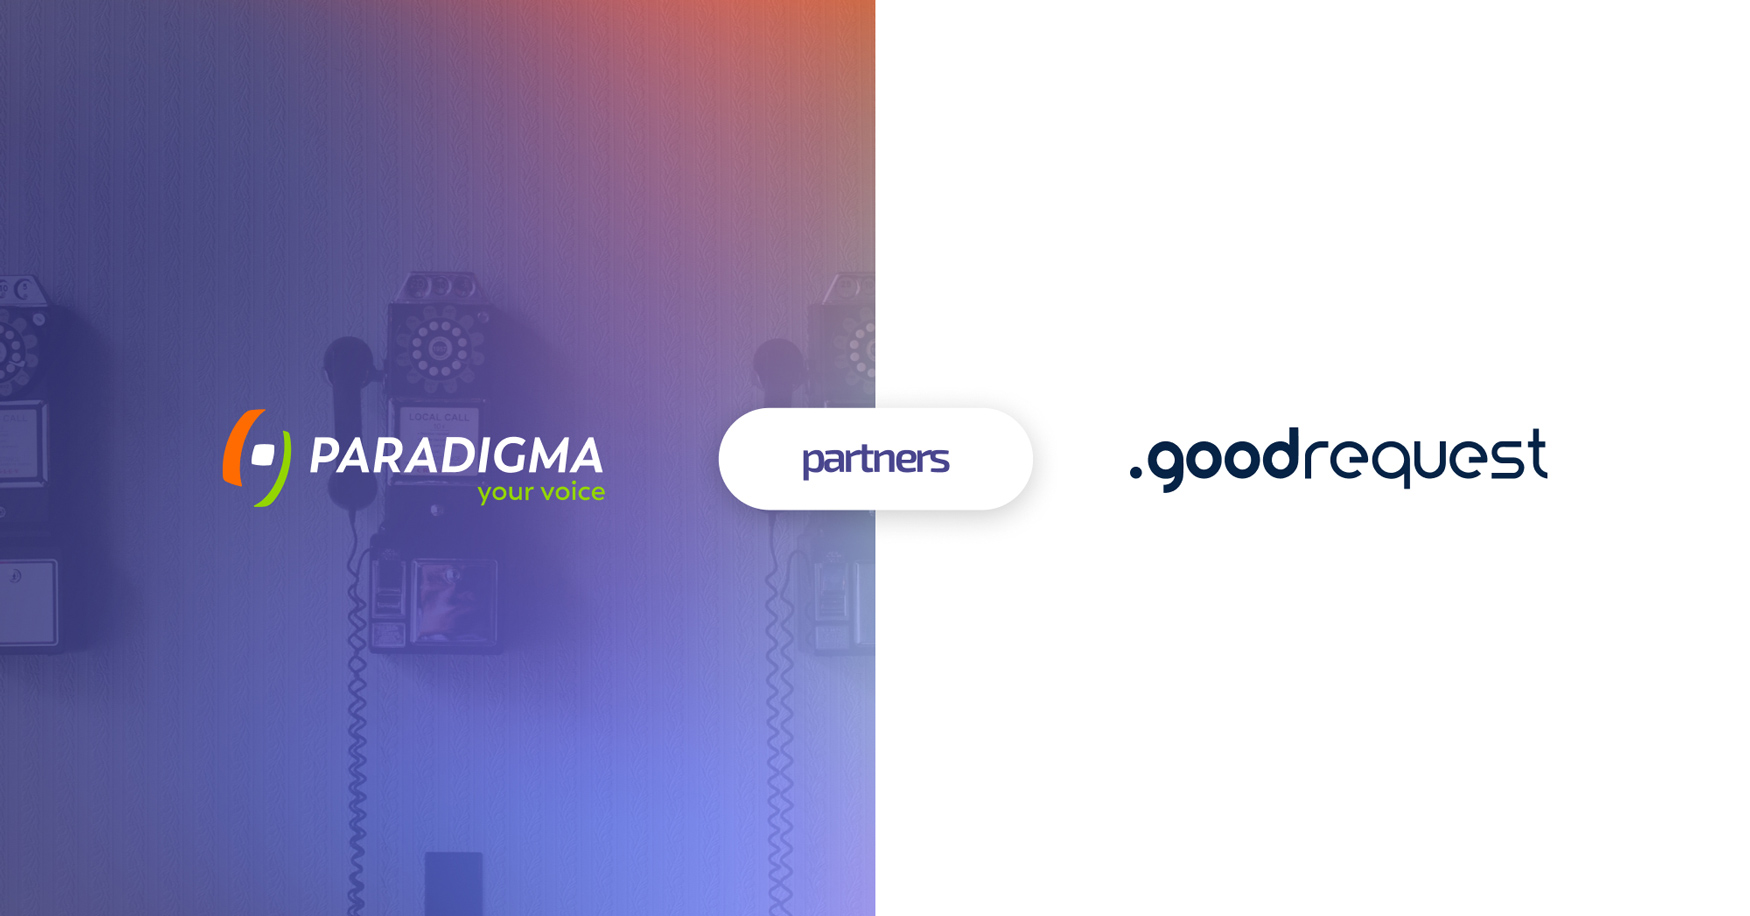 #grpartners: Paradigma - an information system for a leader in communications services